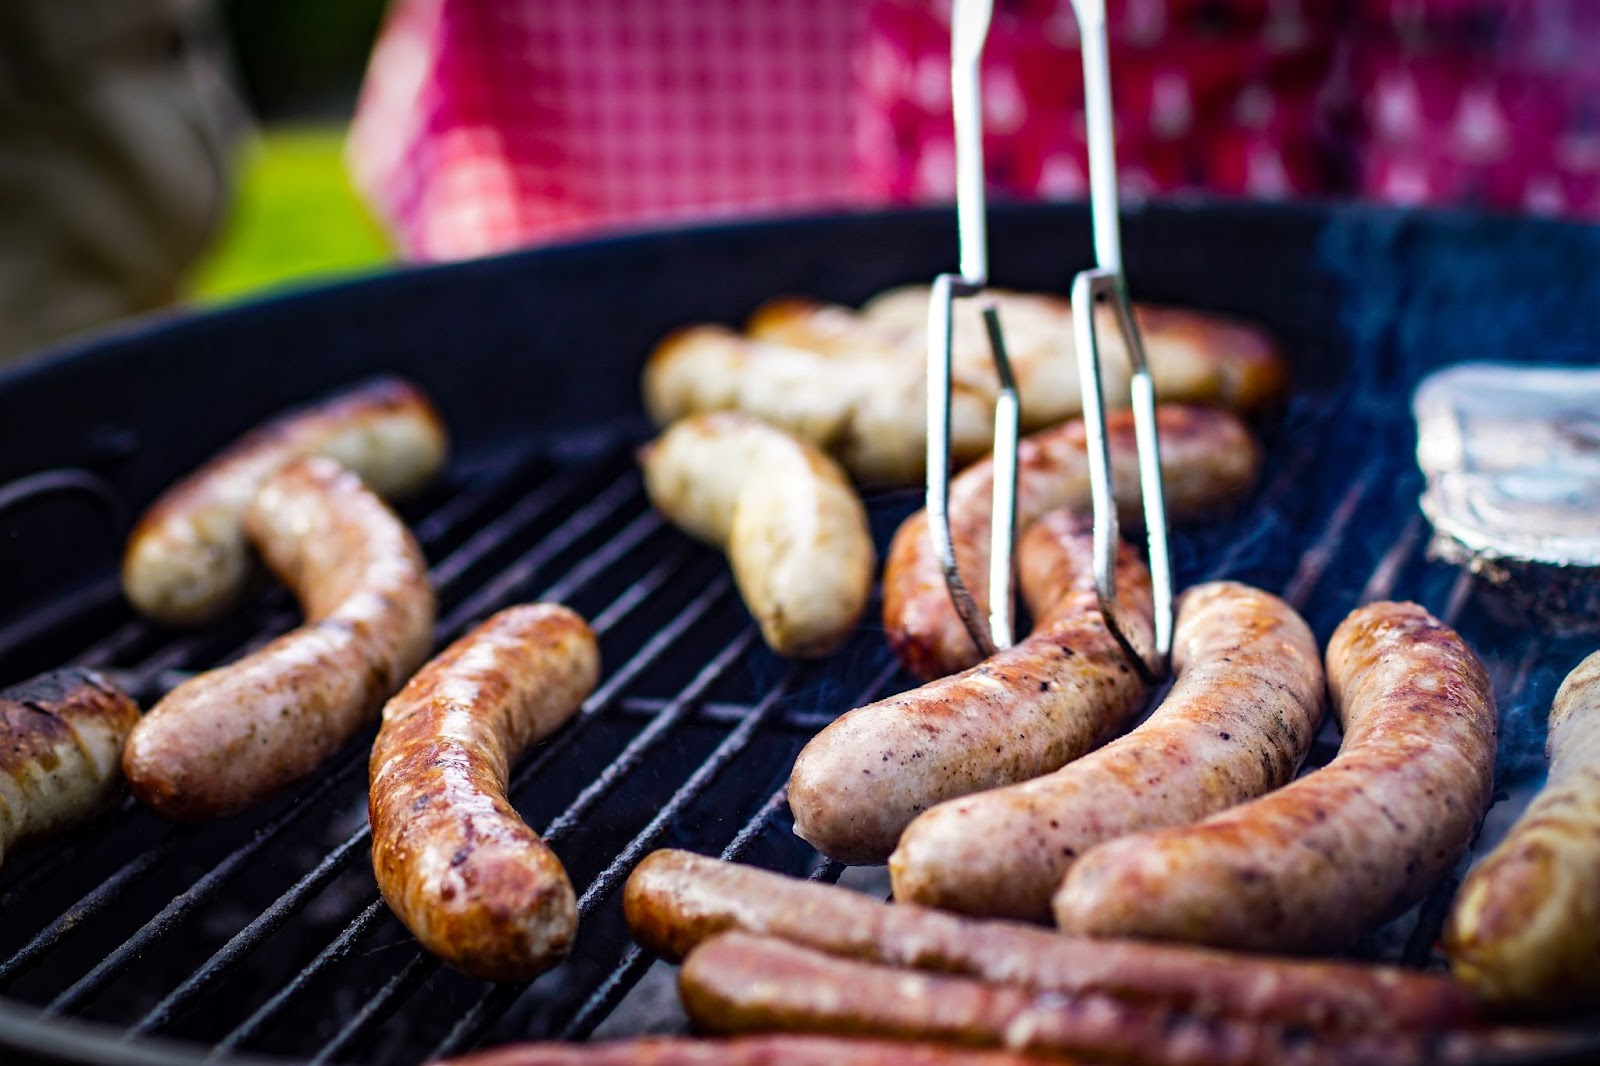 Different types of sausages being cooked on a grille.